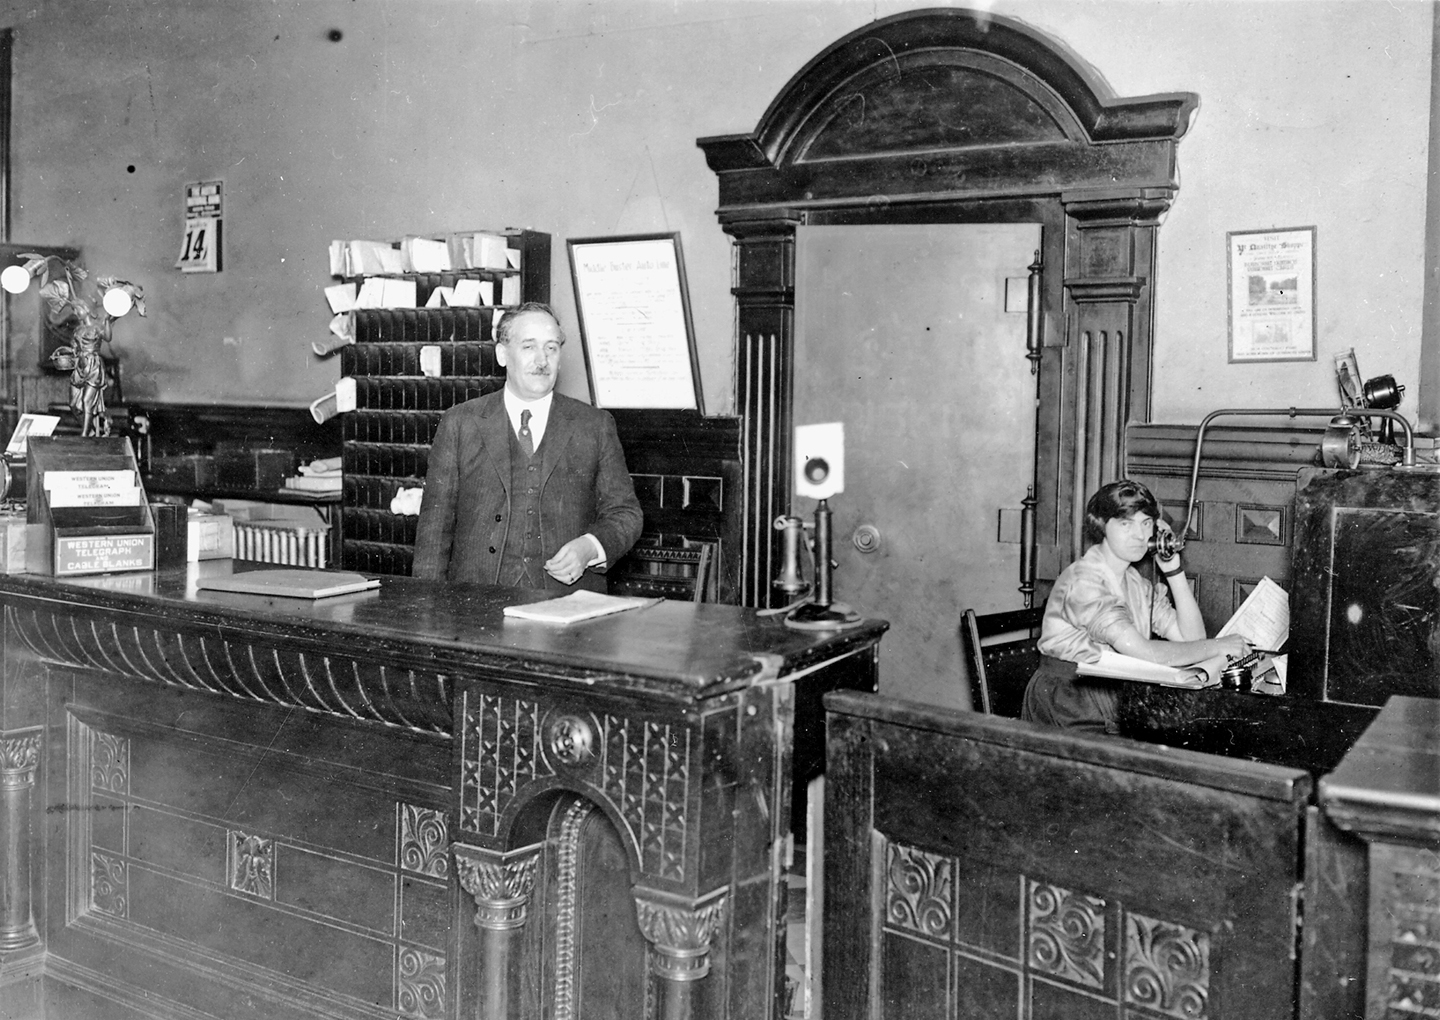 vintage front desk image of the Driskill Hotel in Austin, Texas